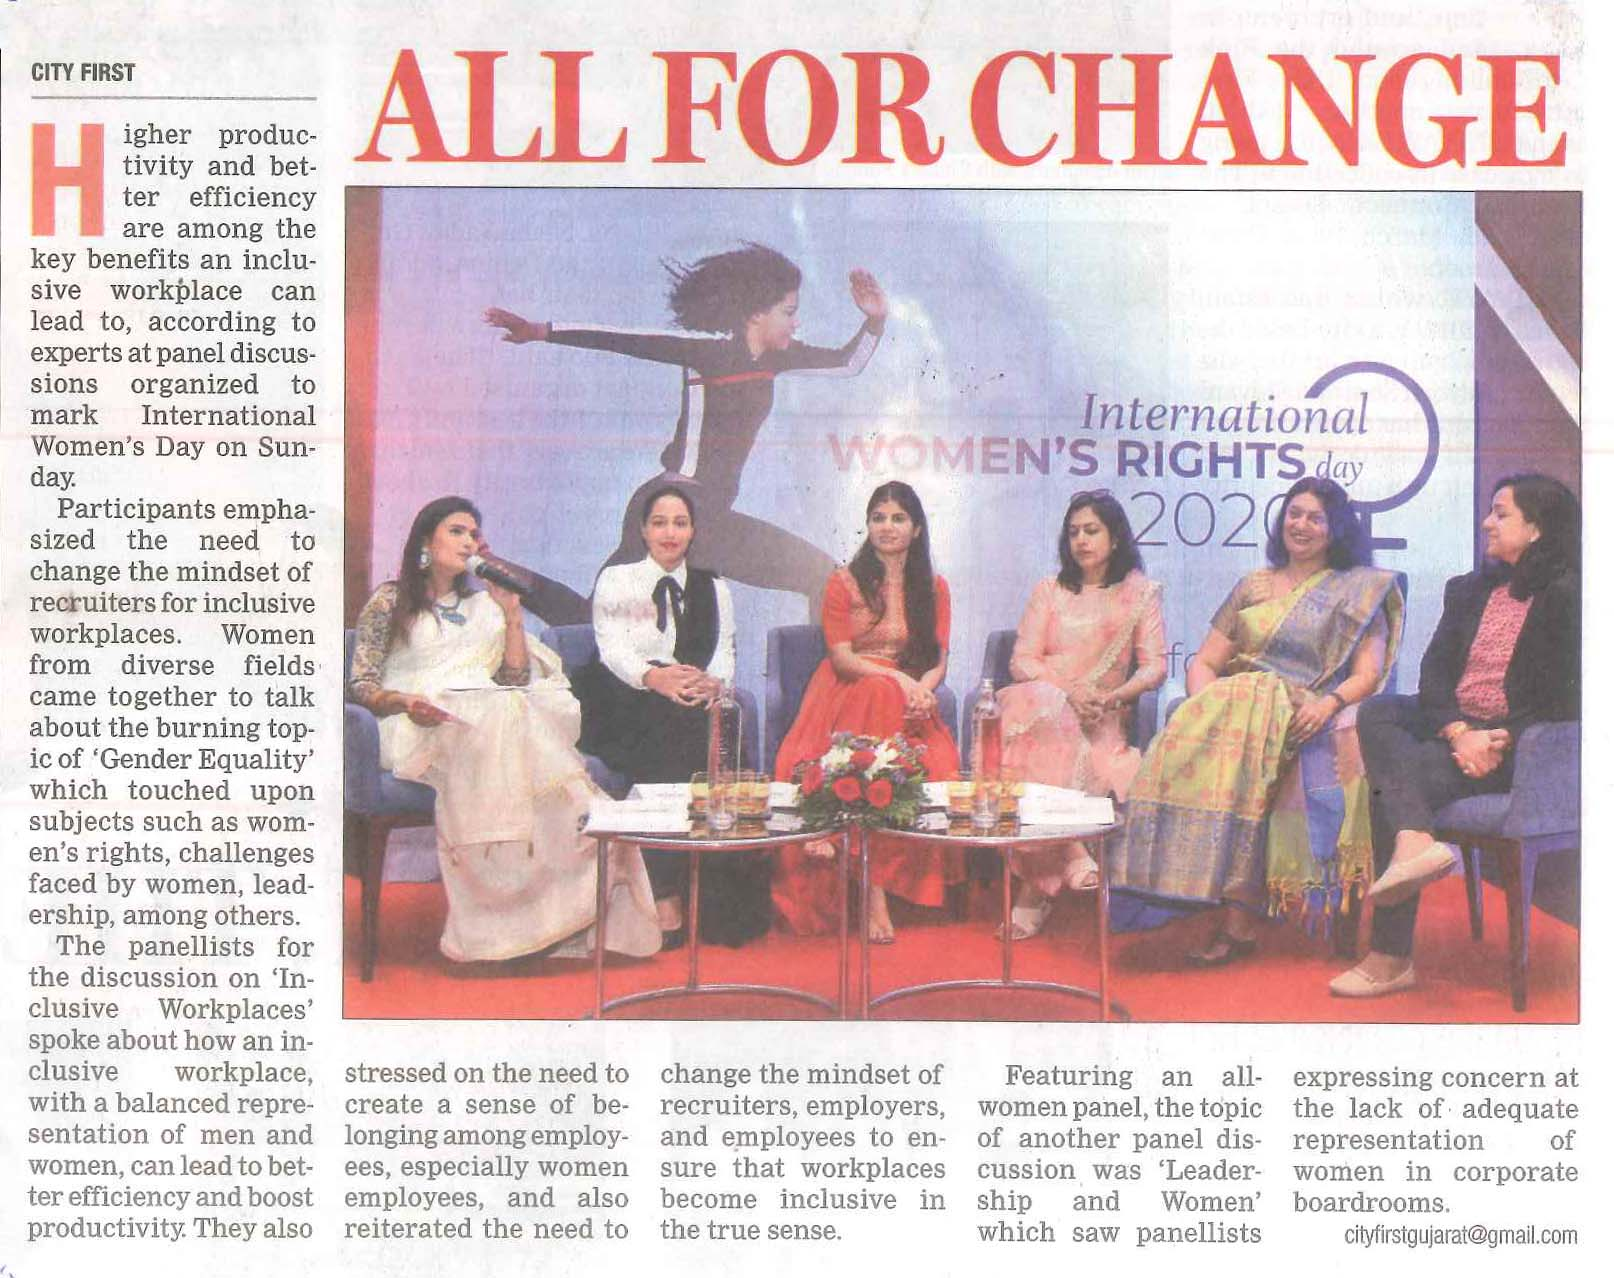 First India City First Coverage